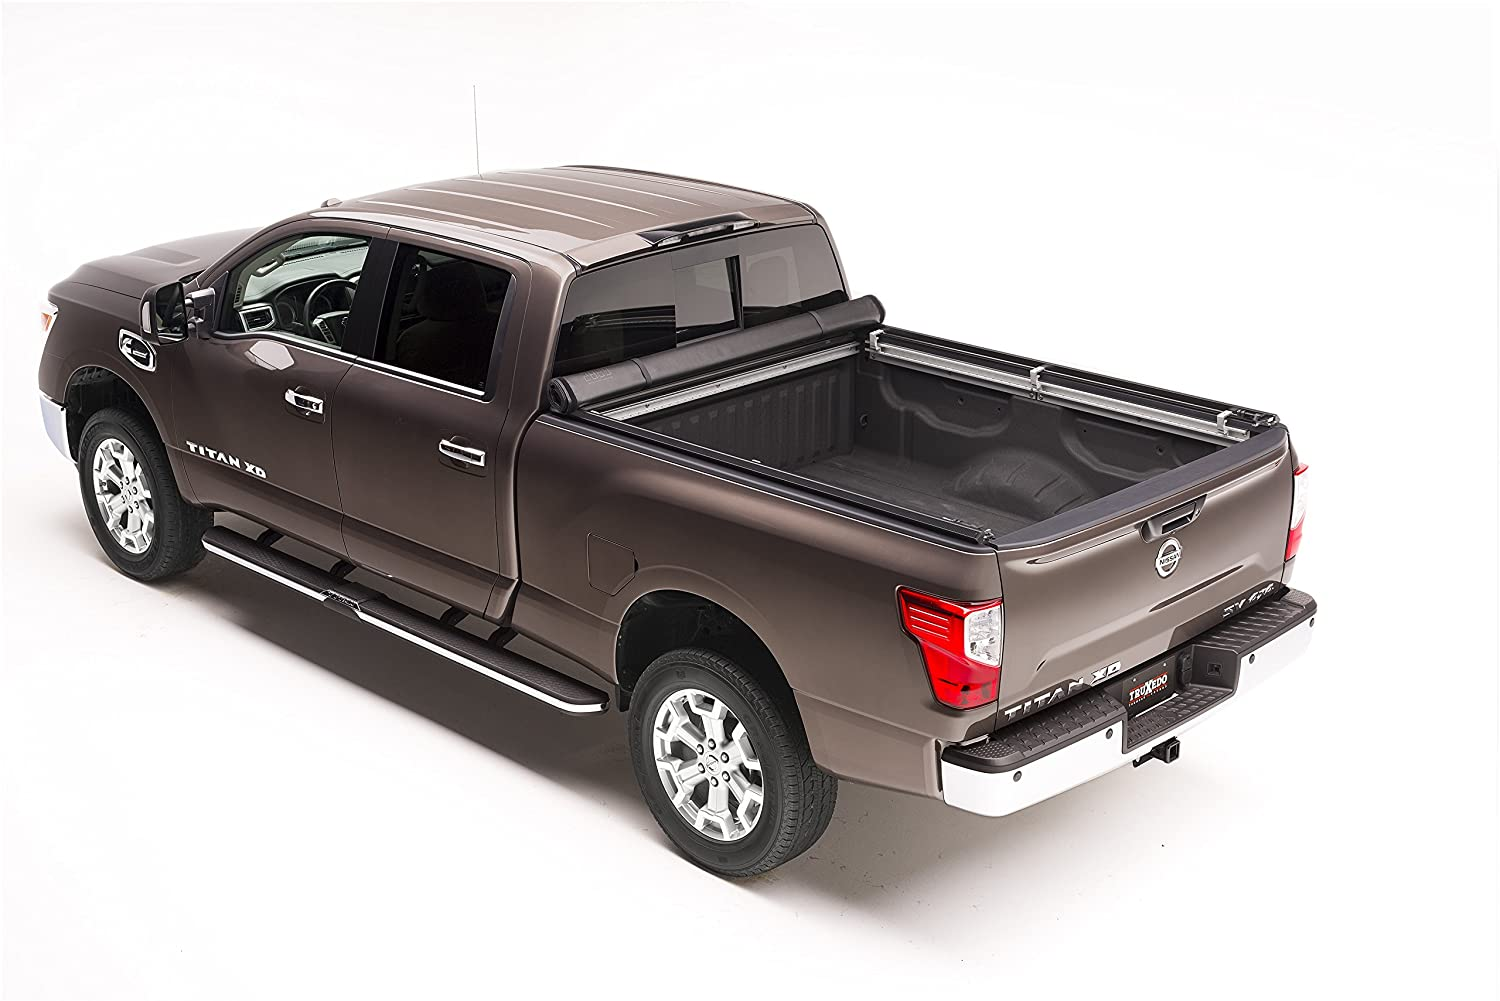 Toyota Tacoma 2015-2018 Service Manual: New Key cannot be Registered